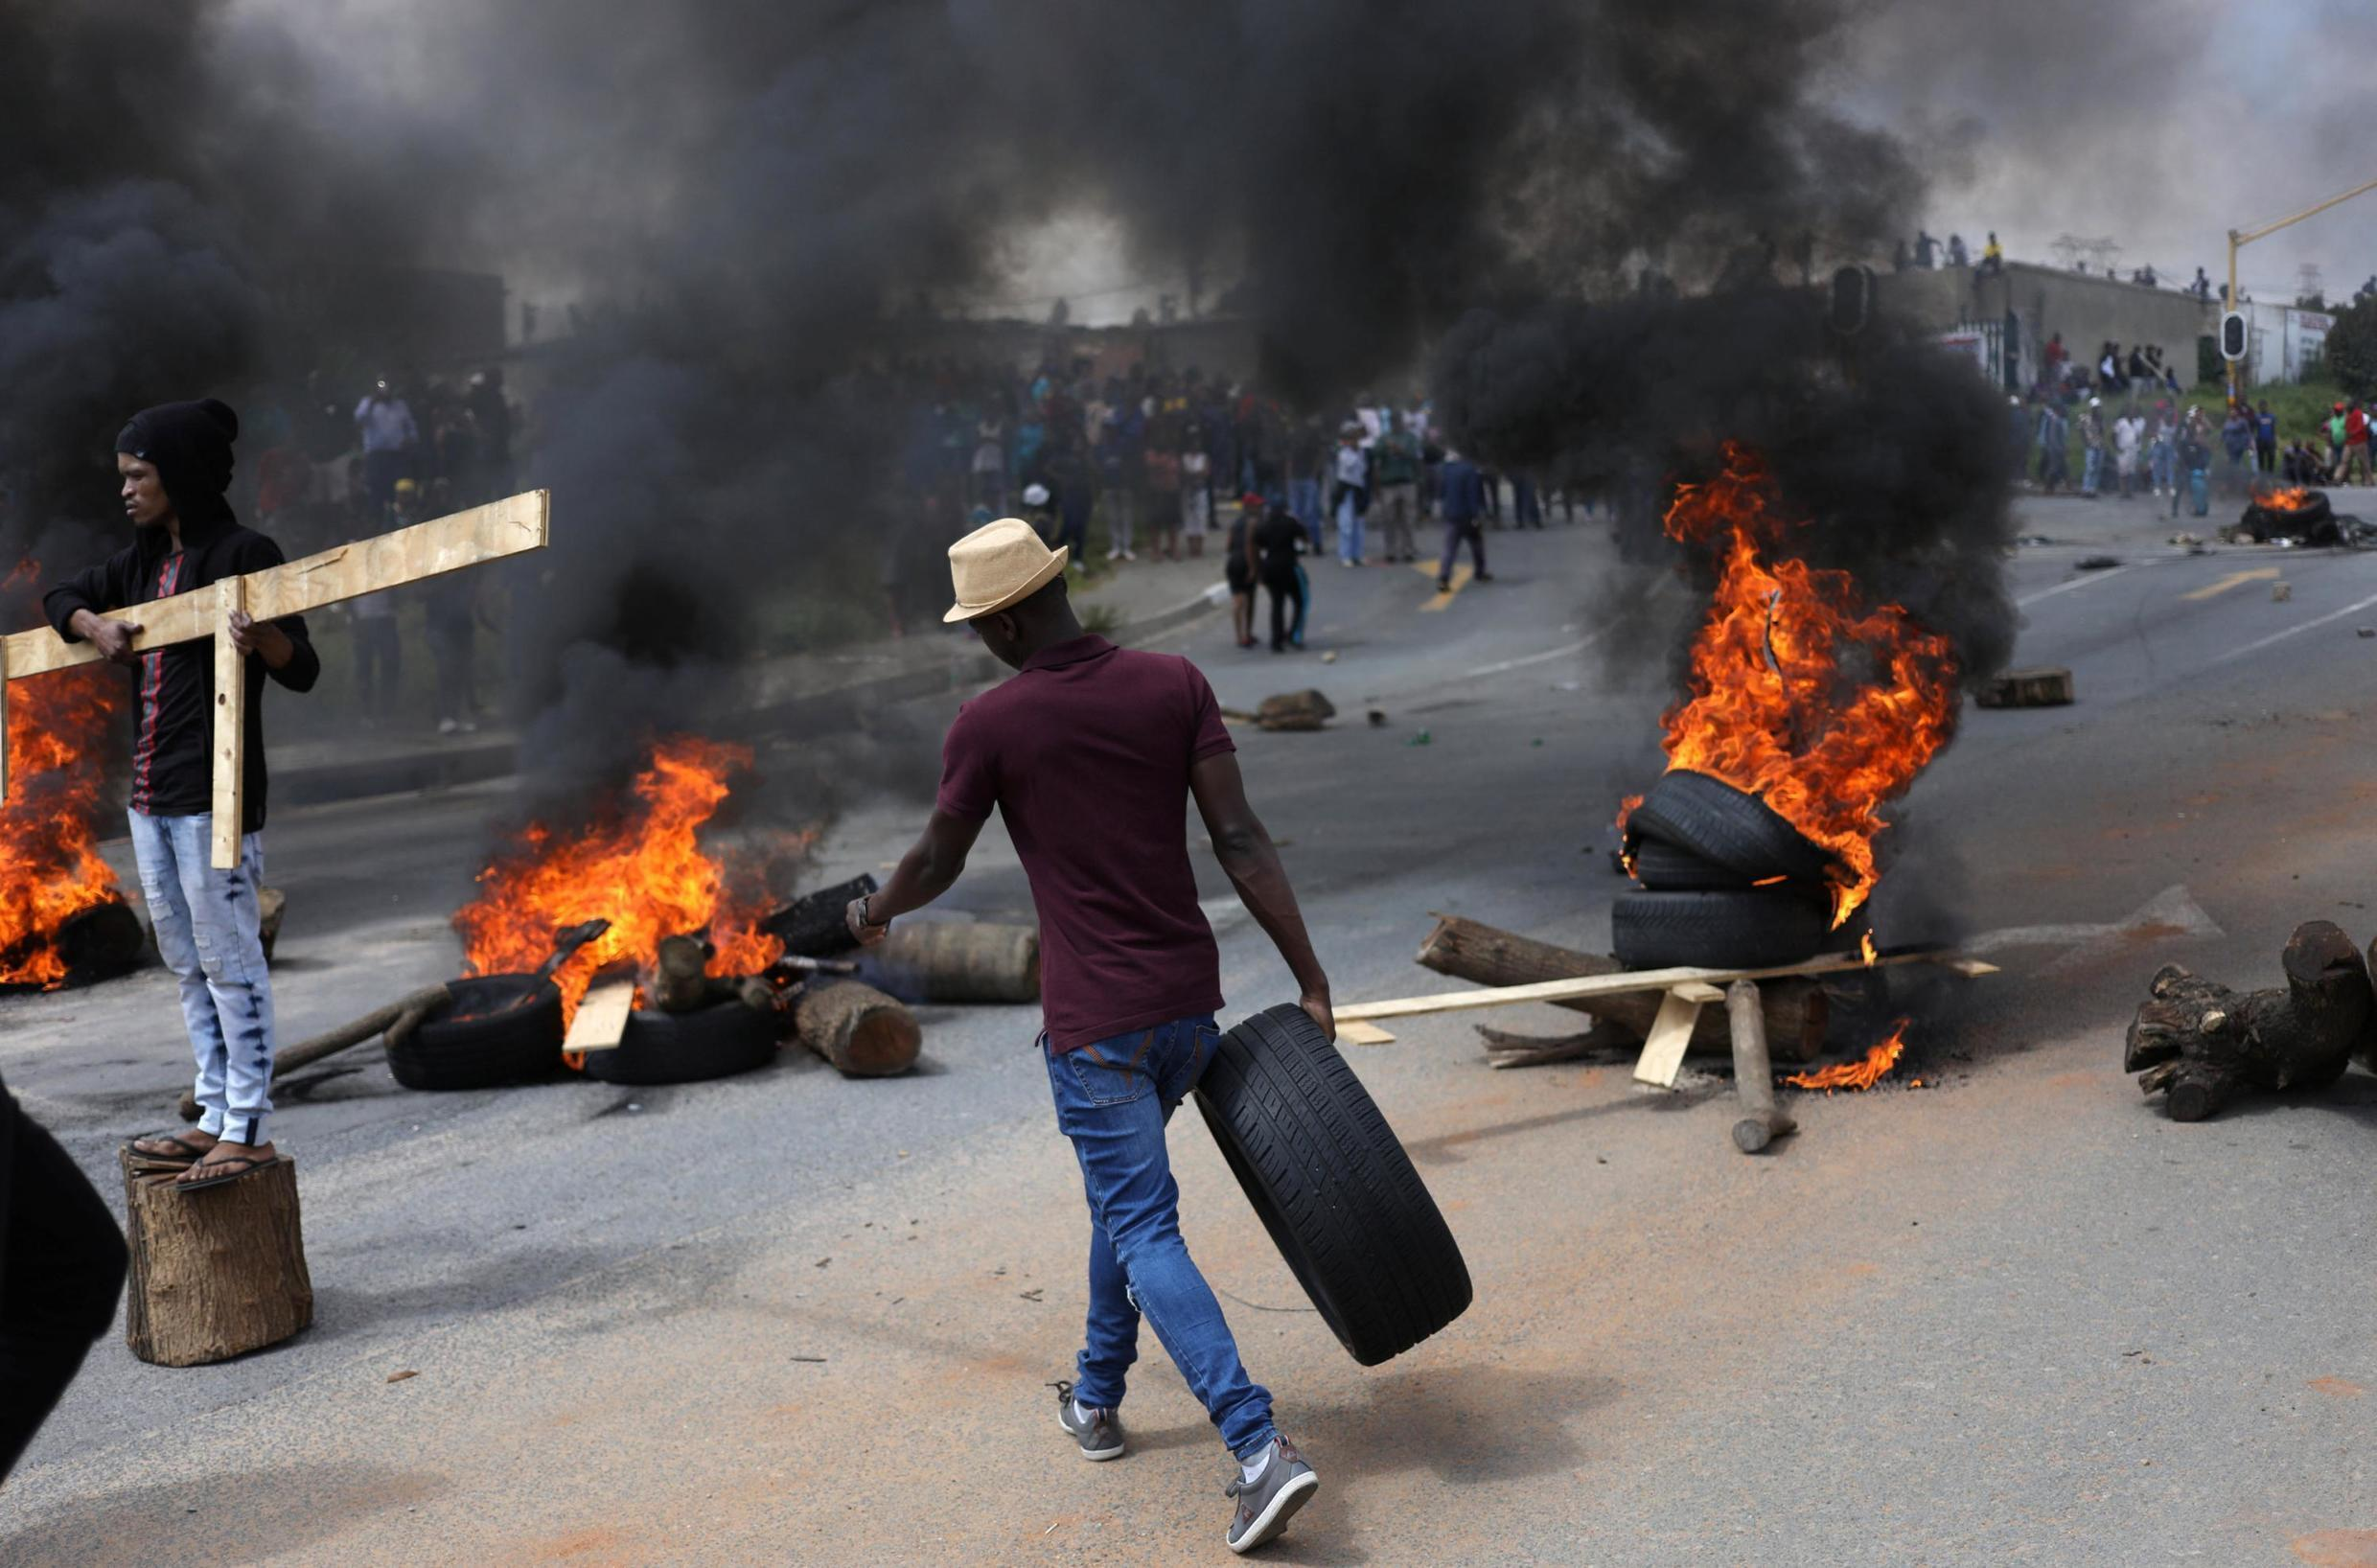 A man walks with a car tyre as he barricades the street during protesst in Alexandra township in the north of Johannesburg, South Africa